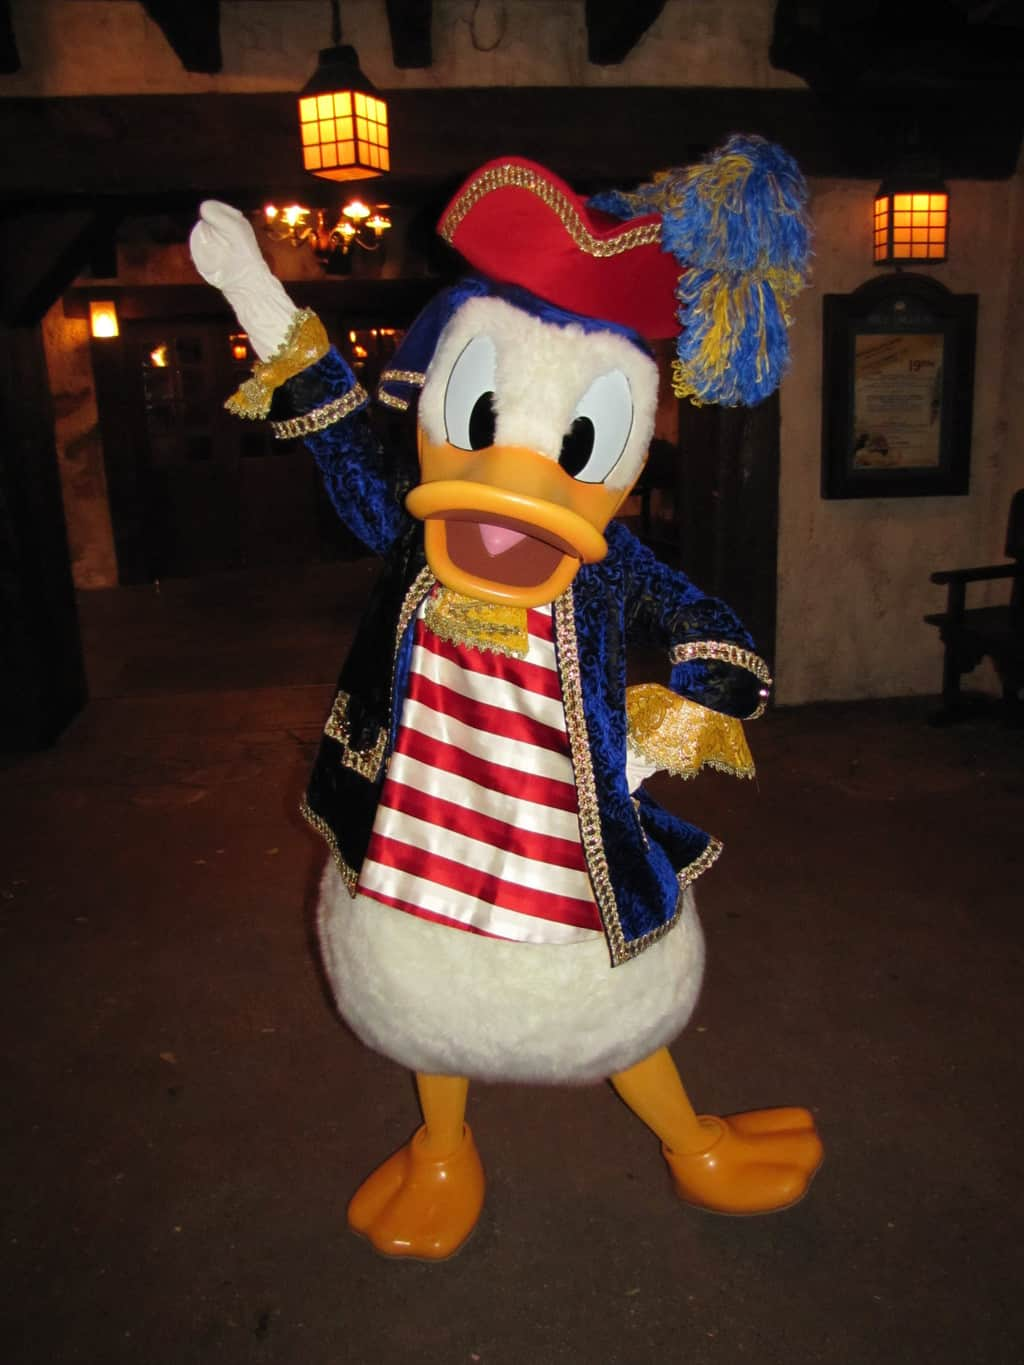 During the Mickey's Not So Scary Halloween Party of 2011 Donald was meeting guests wearing his Pirate outfit. A year later this outfit was modified and used again during a special Halloween version of the Character Express on October 31st.